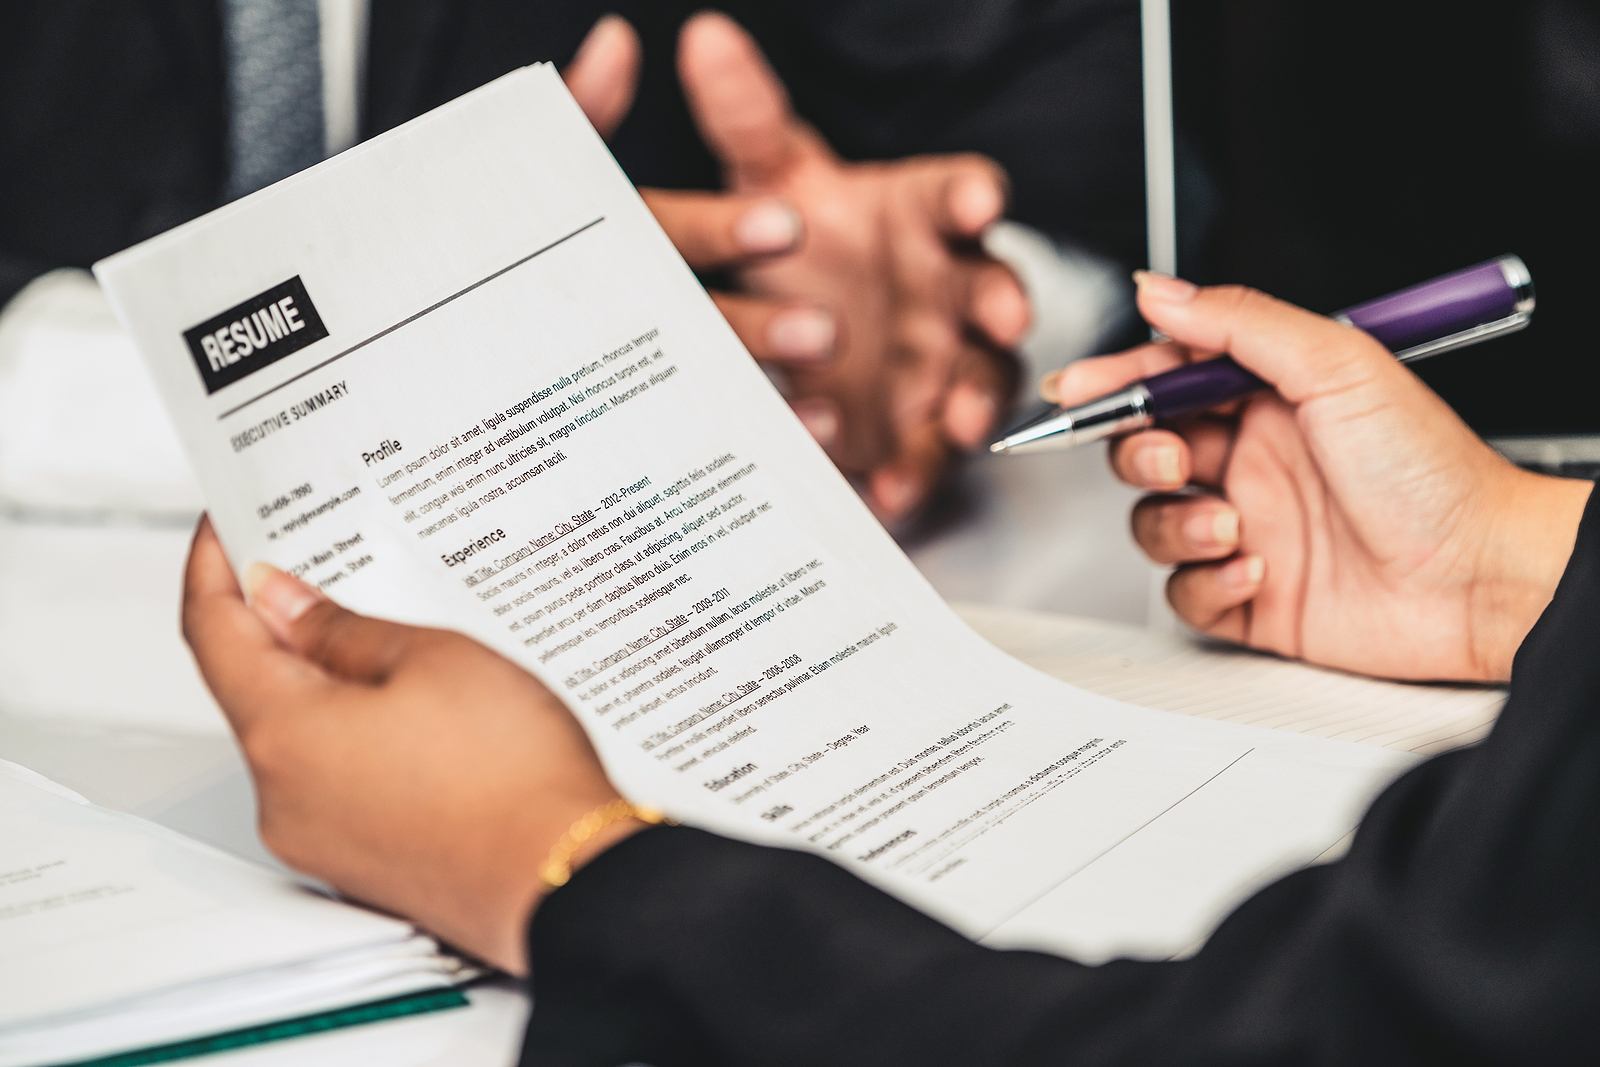 Job Candidate Tailors Their Resume to the Job Description